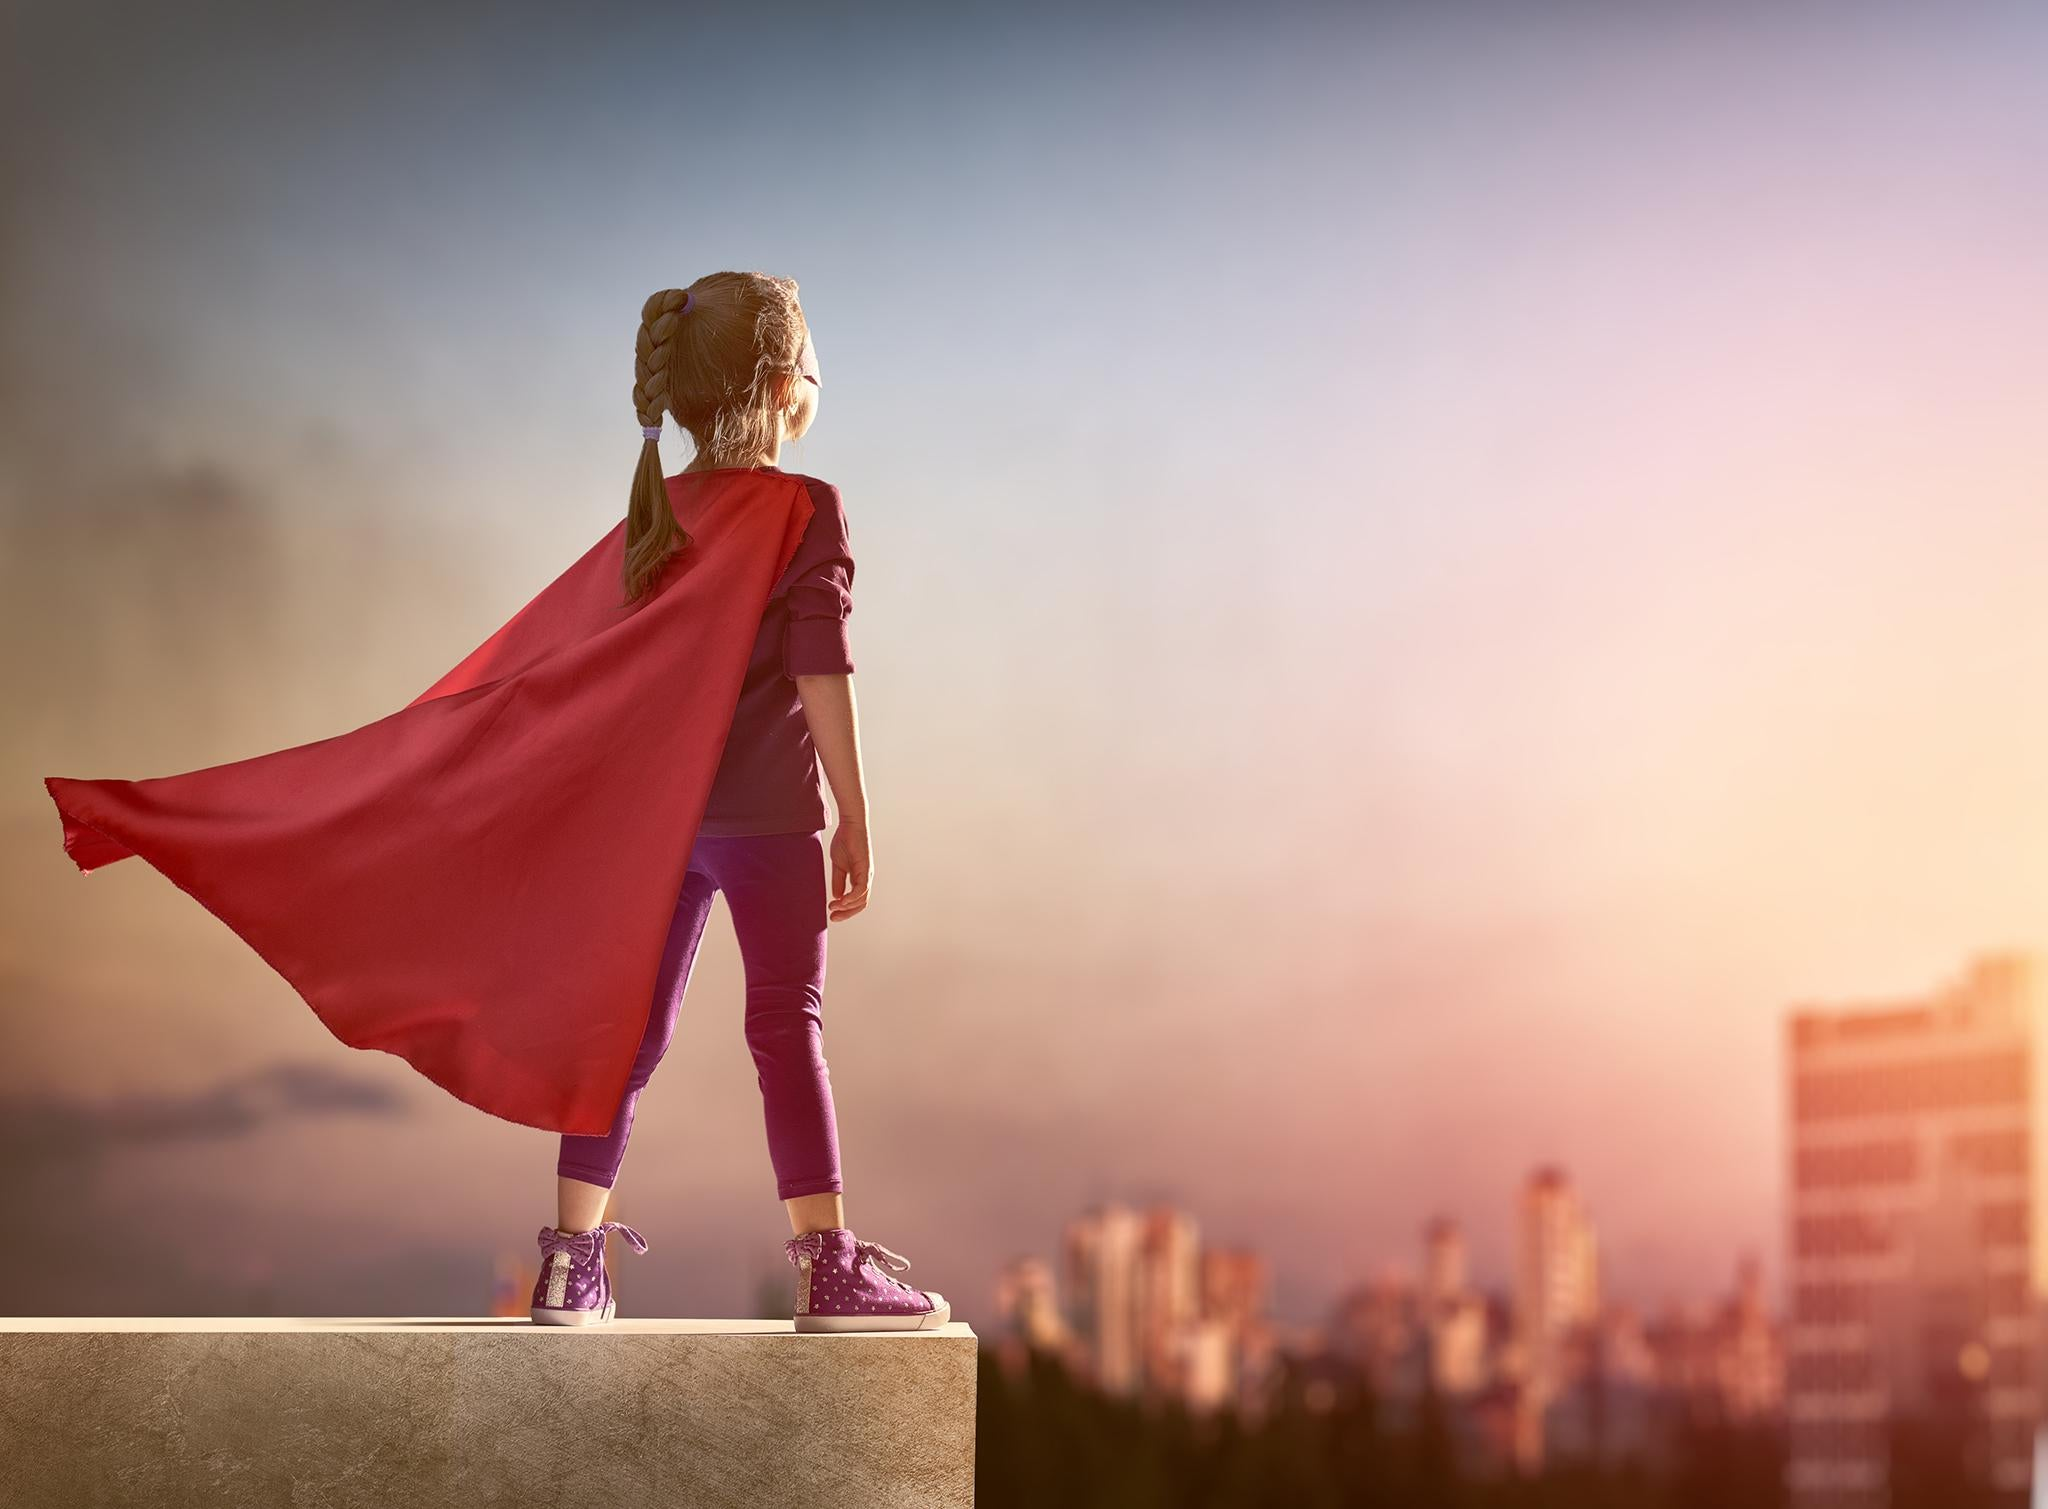 10 things girls need in order to grow up strong and independent, according to a parenting expert